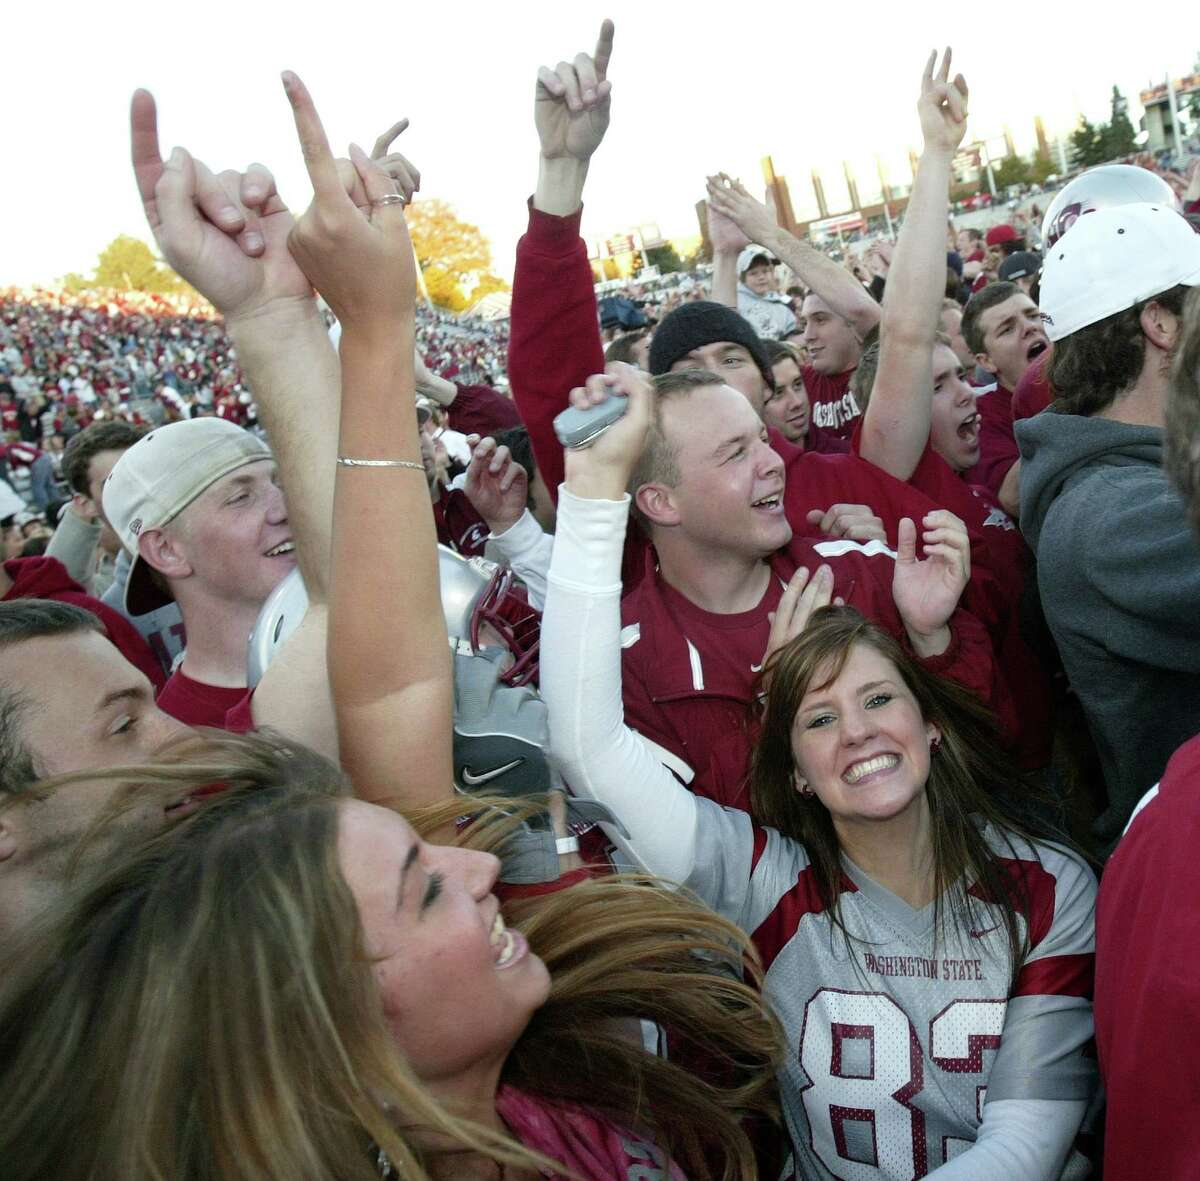 PULLMAN - OCTOBER 21: Washington State Cougars fans celebrate after the Cougars beat the Oregon Ducks 34-23 on October 21, 2006 at Martin Stadium in Pullman.